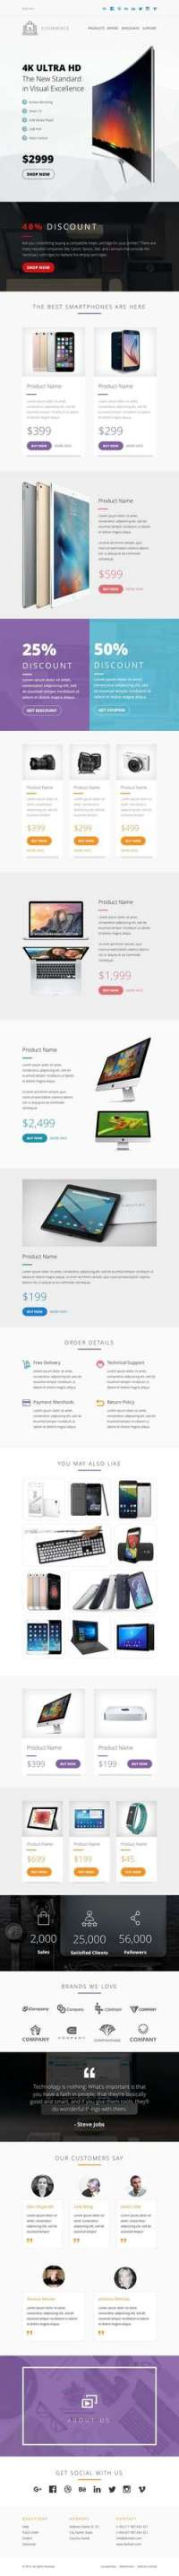 Ecommerce Responsive Email with Mailchimp Editor - StampReady Builder